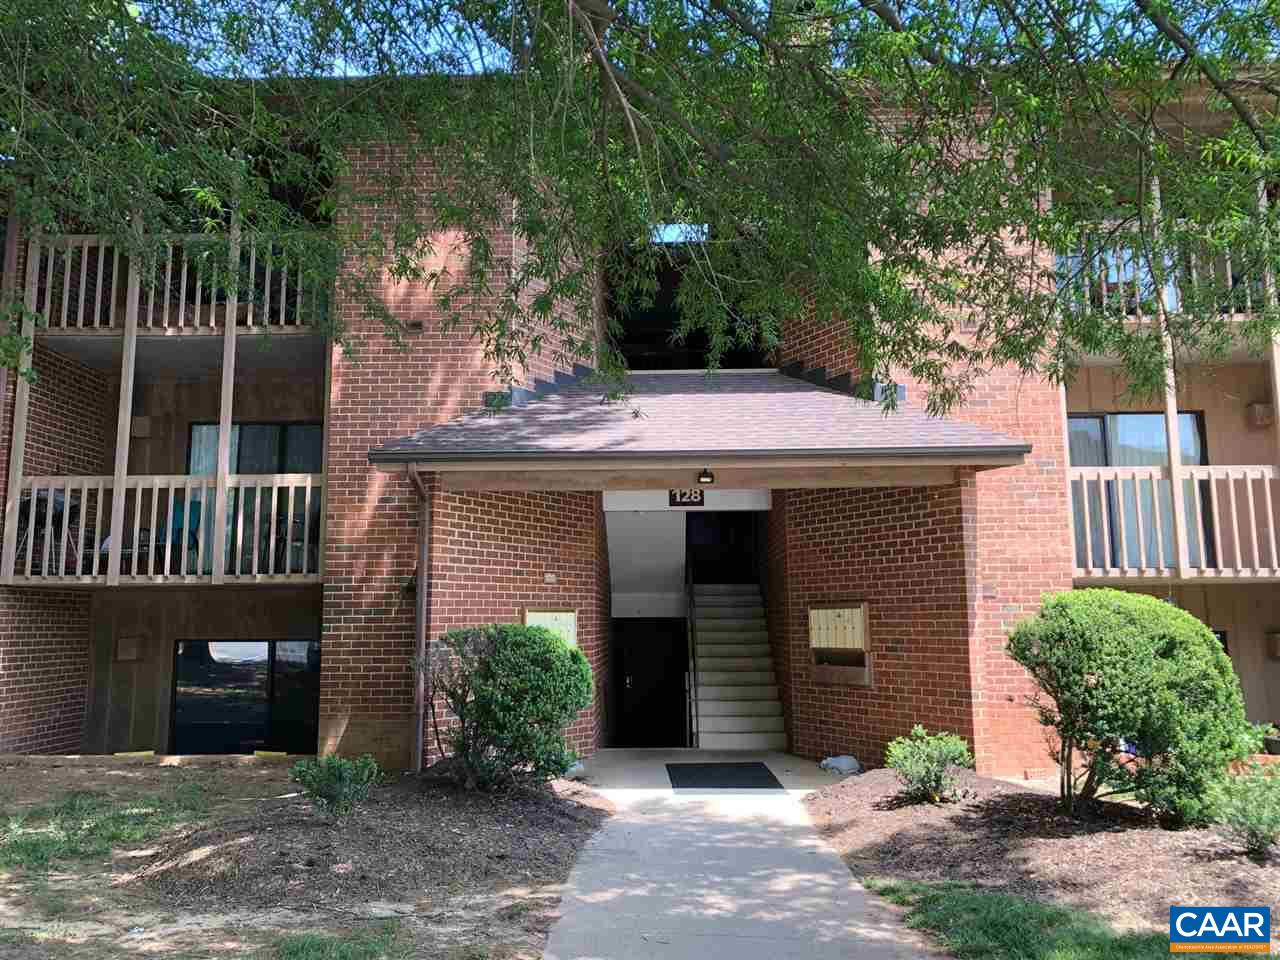 Nice condo in great location, convenient to UVA - 2nd floor unit with balcony and wood burning fireplace. Close by Stonefield shopping and restaurants. Community pool, care fee living.